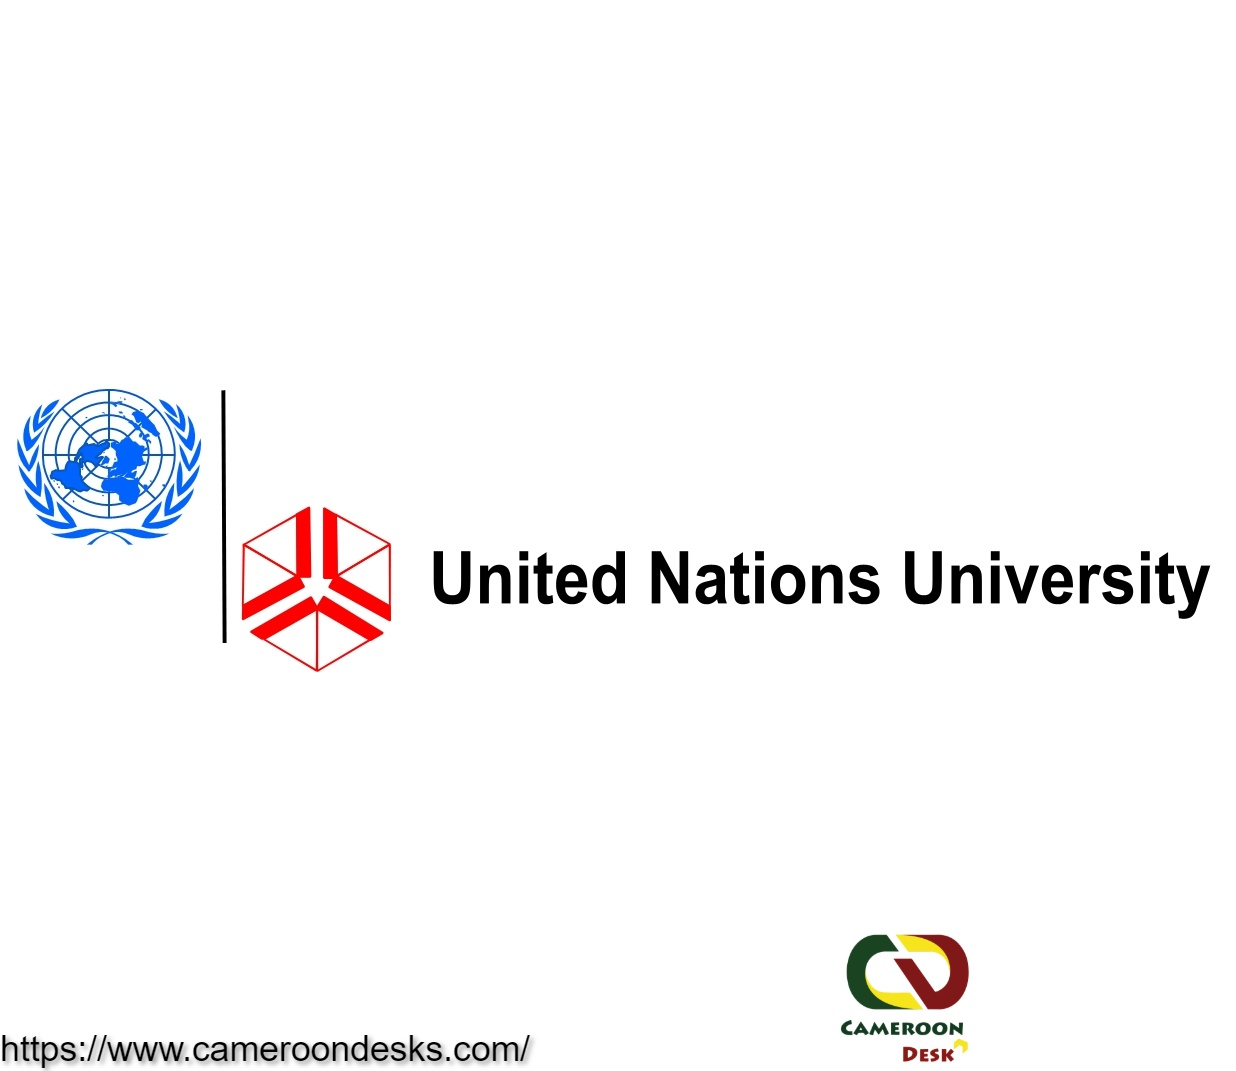 Japan Foundation United Nations University (JFUNU) Scholarships 2021/2022 for PhD Students from Developing Countries